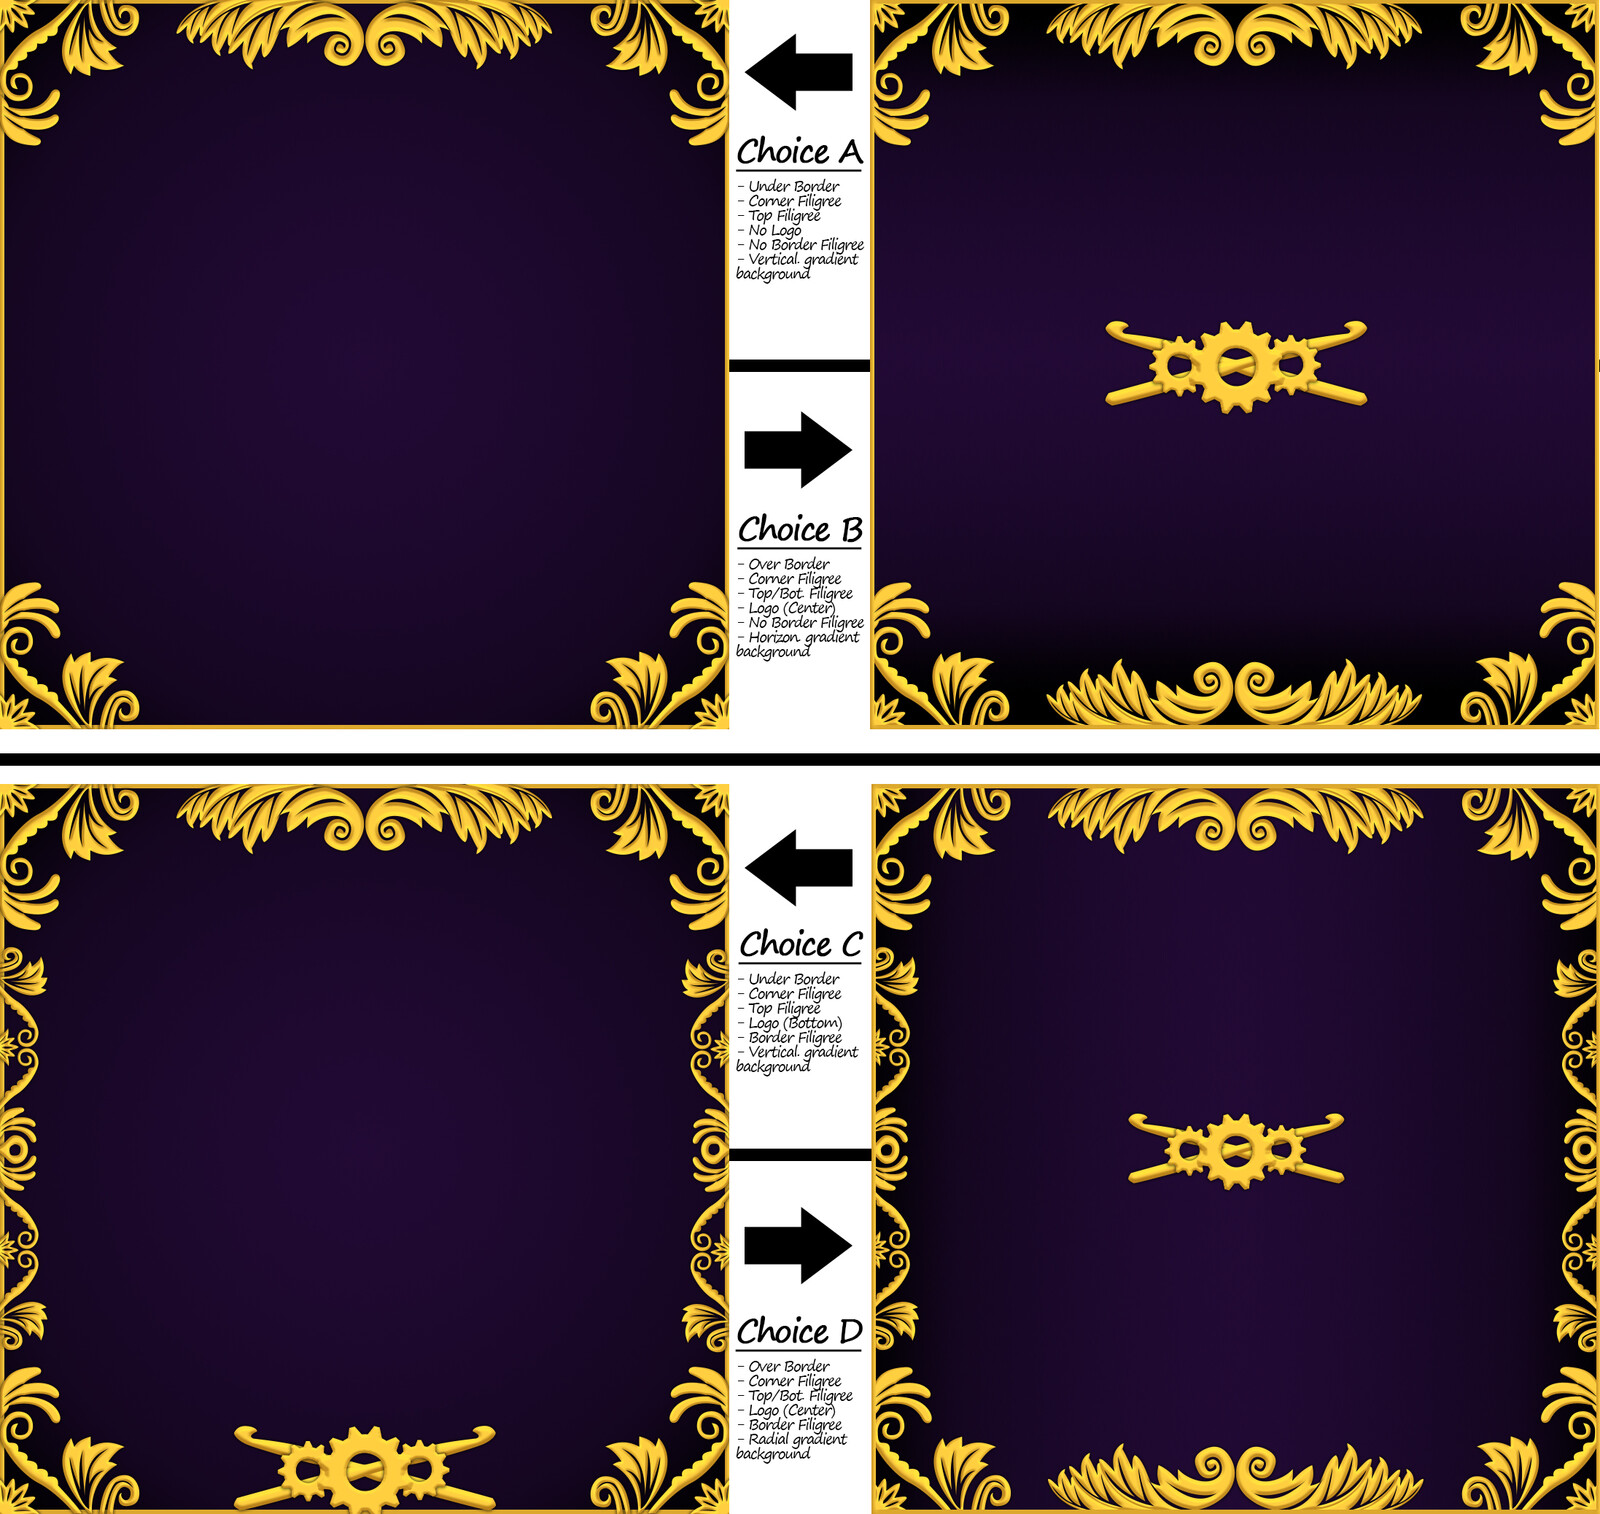 Various iterations of the receipt banner (early)